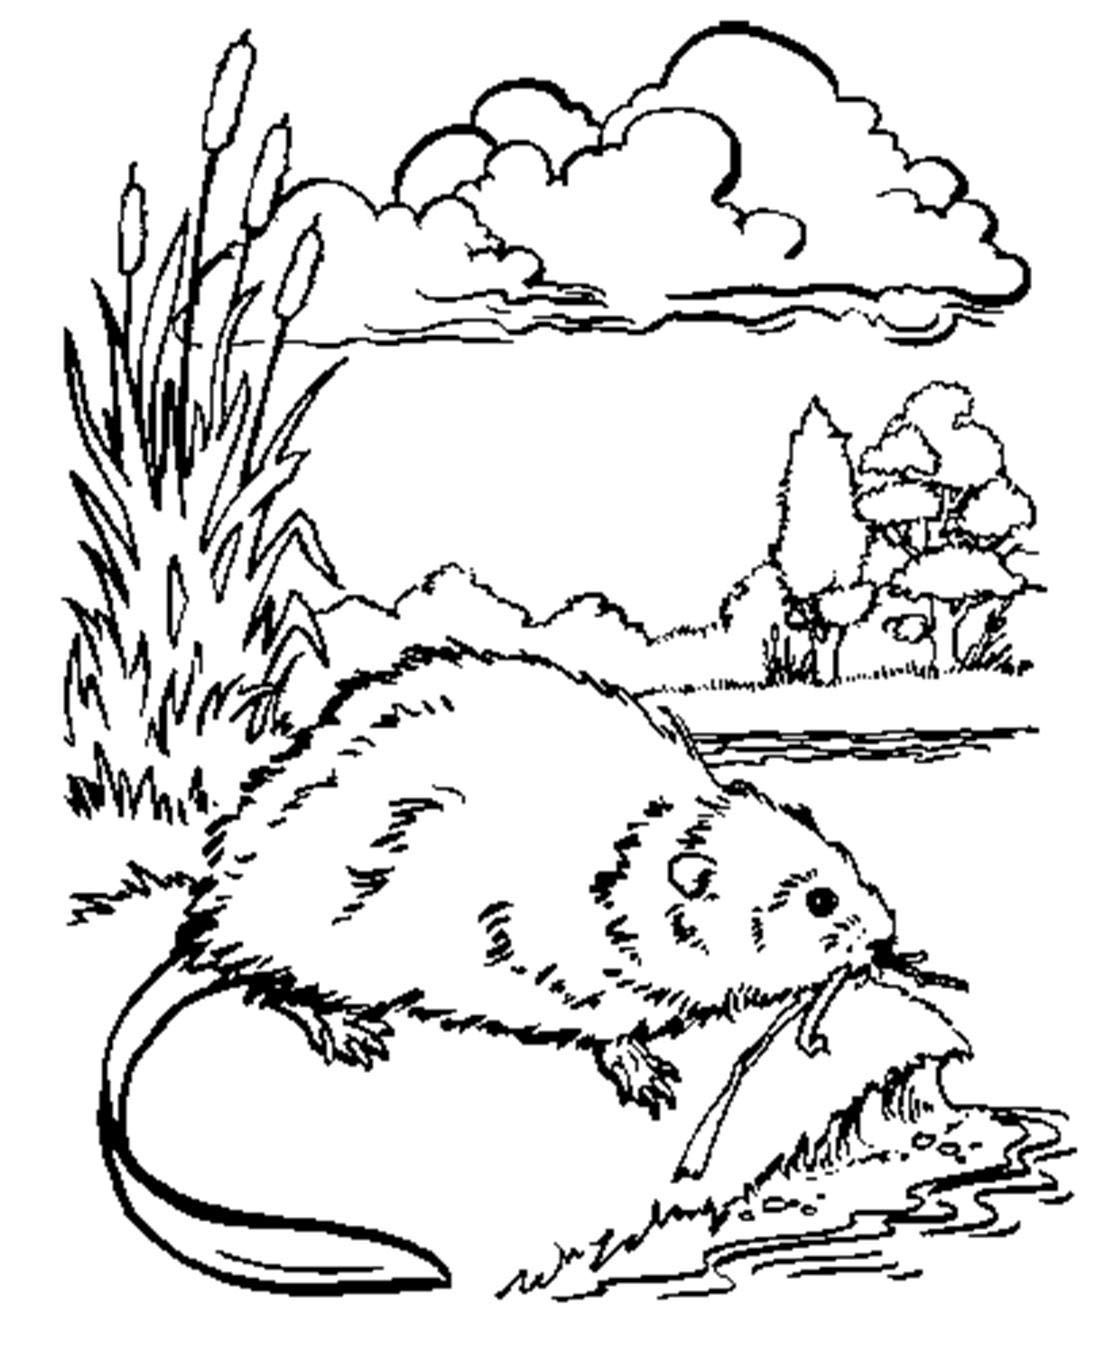 Muskrat Coloring Pages Download Puppy Coloring Pages Dog Coloring Book Coloring Pages [ 1350 x 1114 Pixel ]